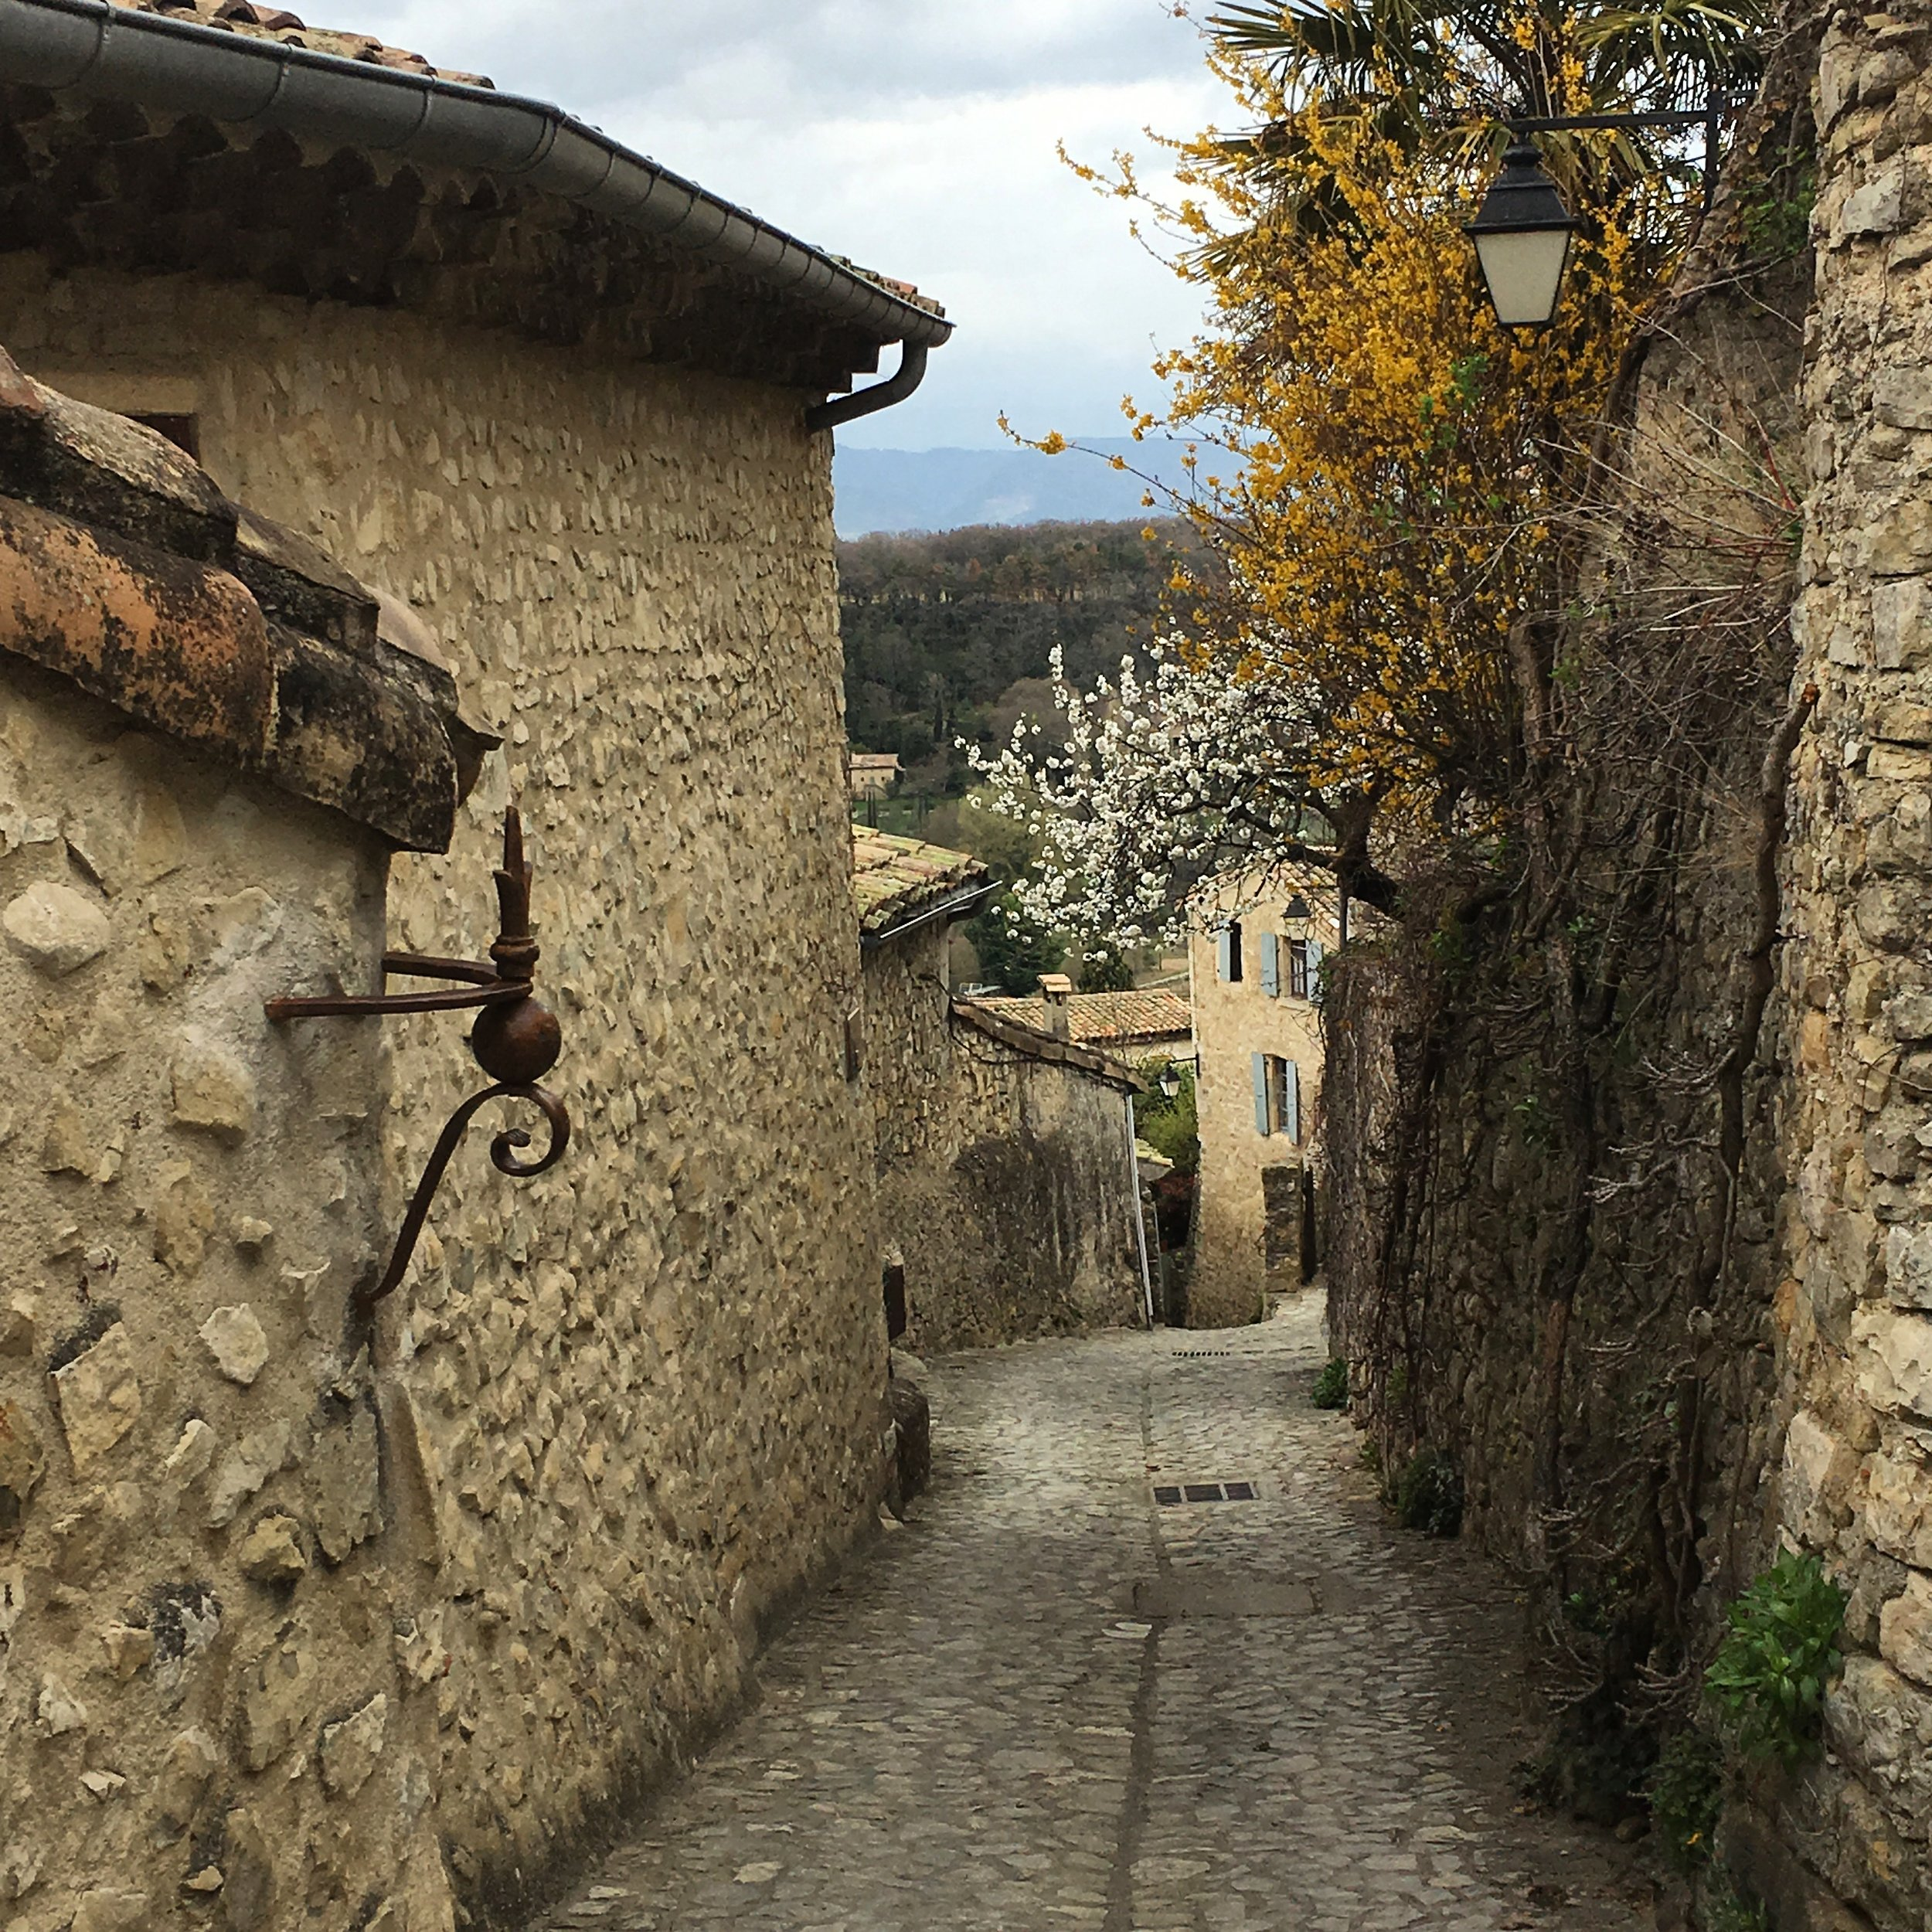 Walking the beautiful cobble stone streets of Mirmande in Drôme, France last month.